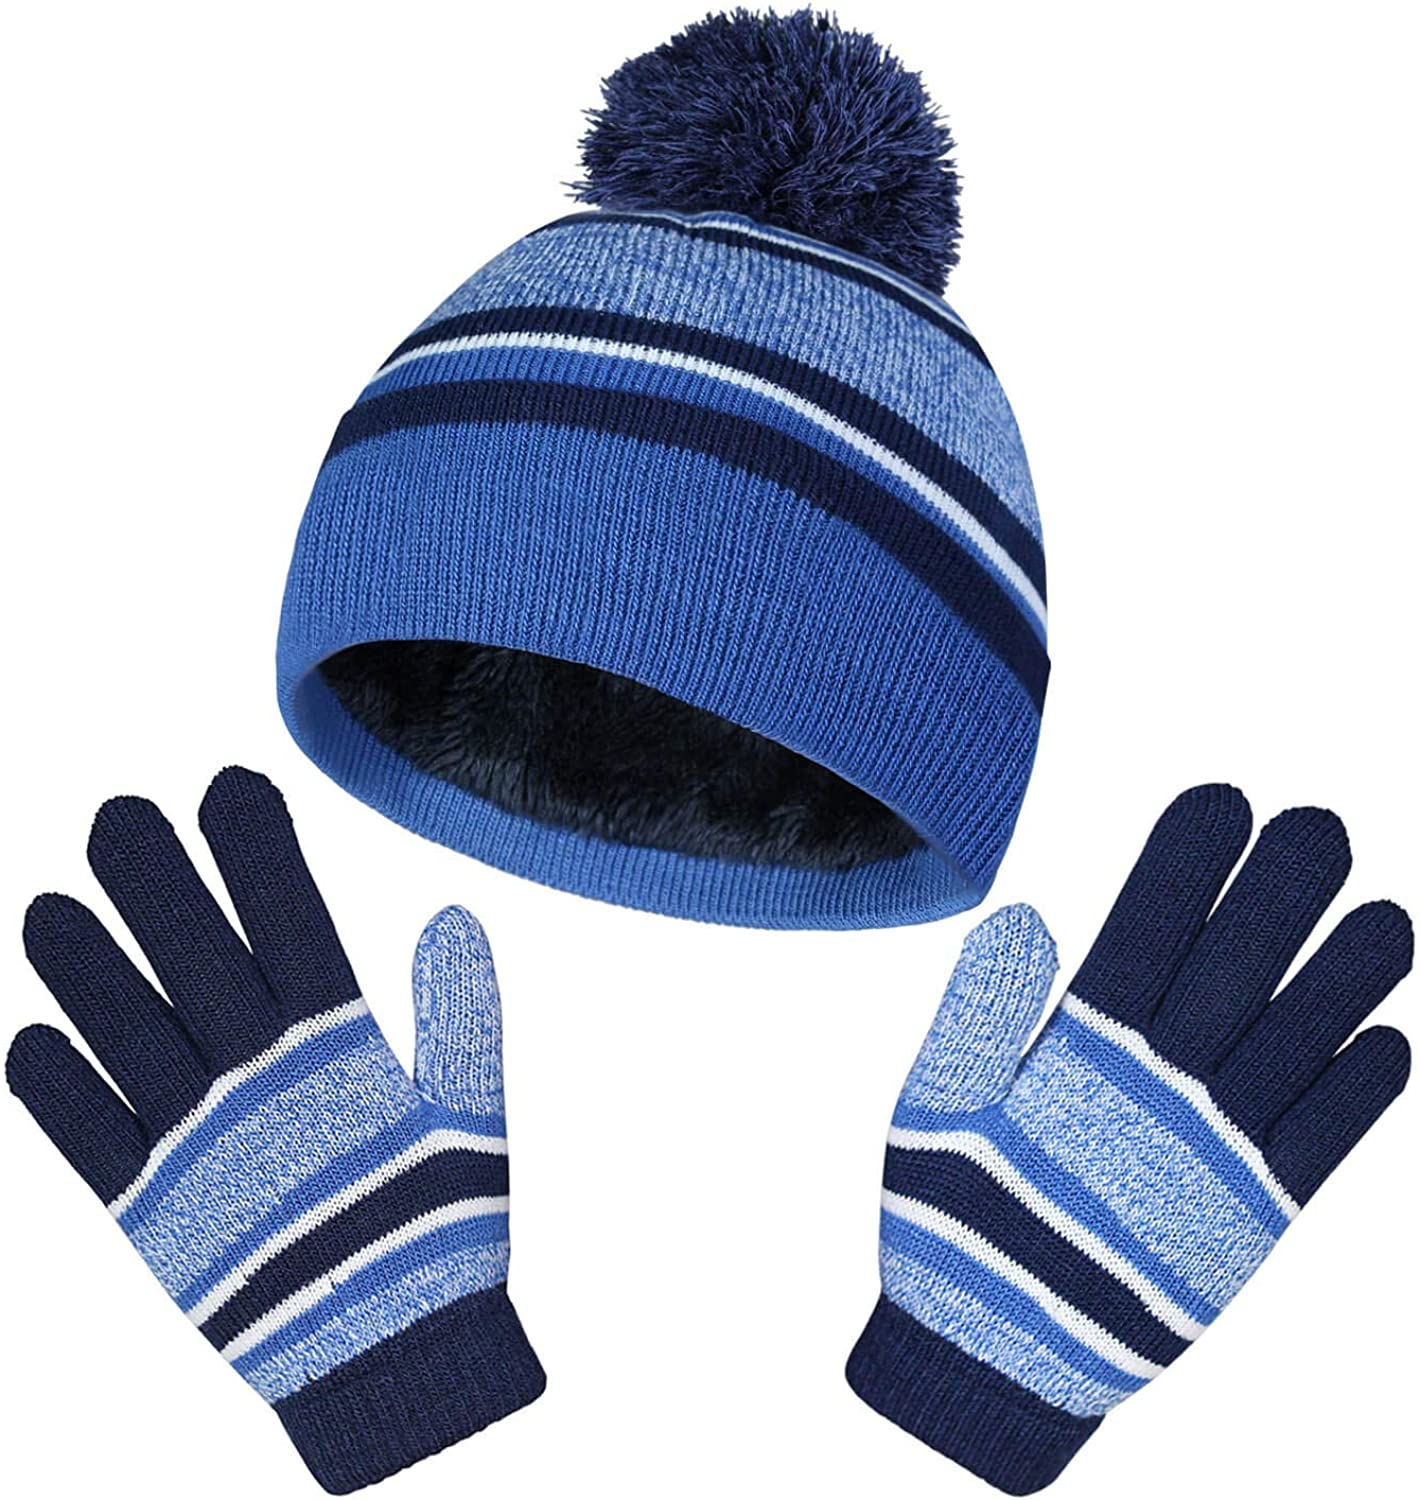 Winter Hats and Gloves Warm Sets Beanie for Boys and Girls Blue: Clothing